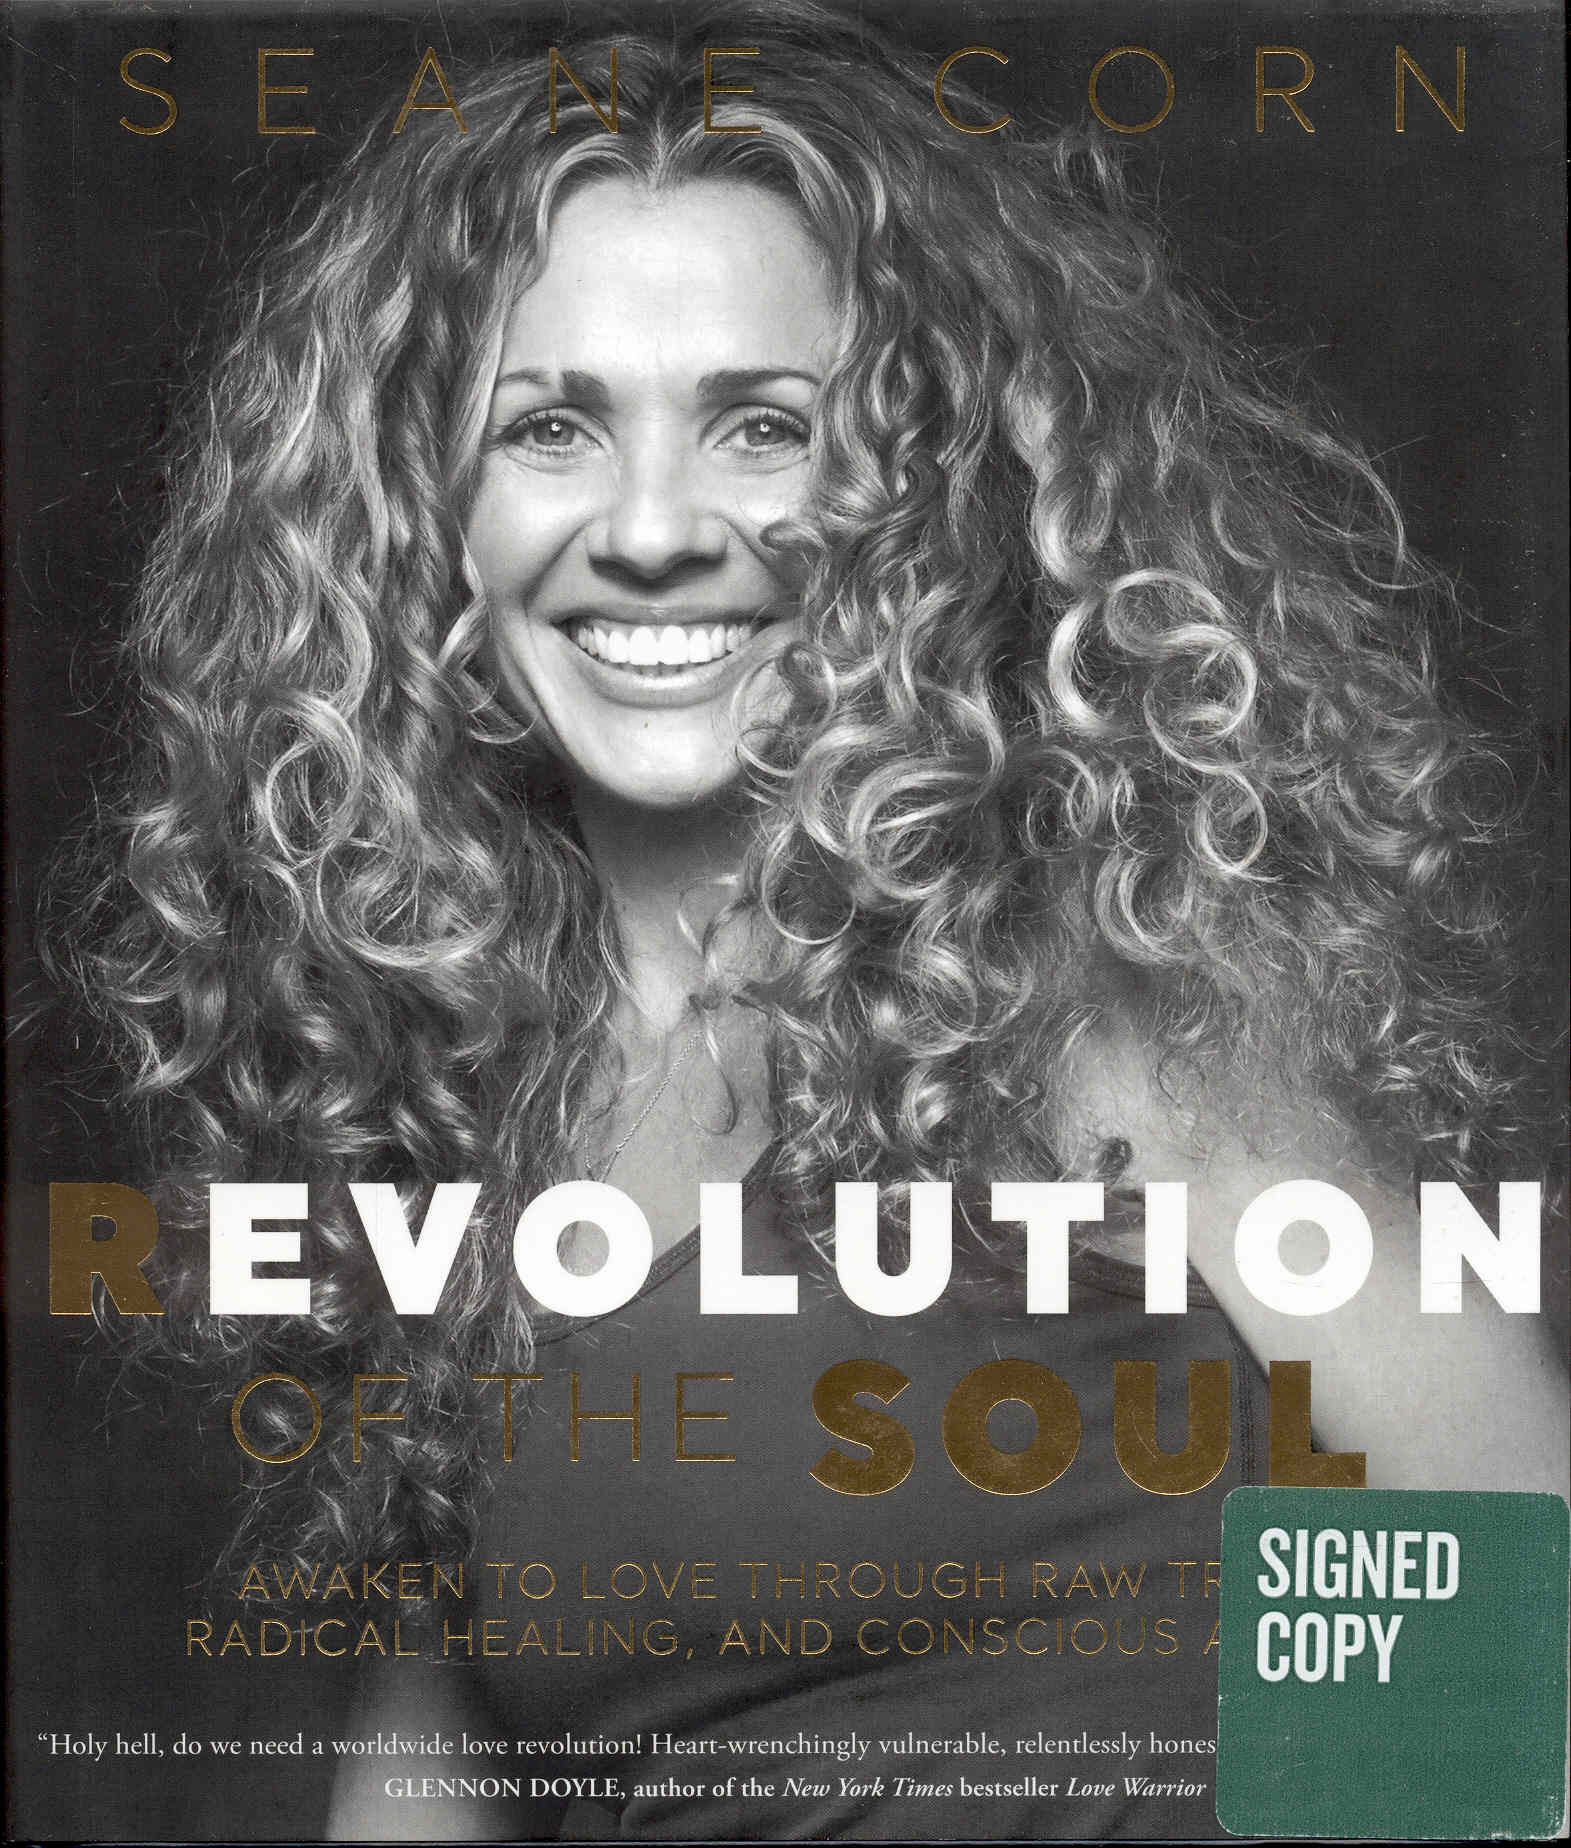 Image for Revolution of the Soul: Awaken to Love Through Raw Truth, Radical Healing, and Conscious Action